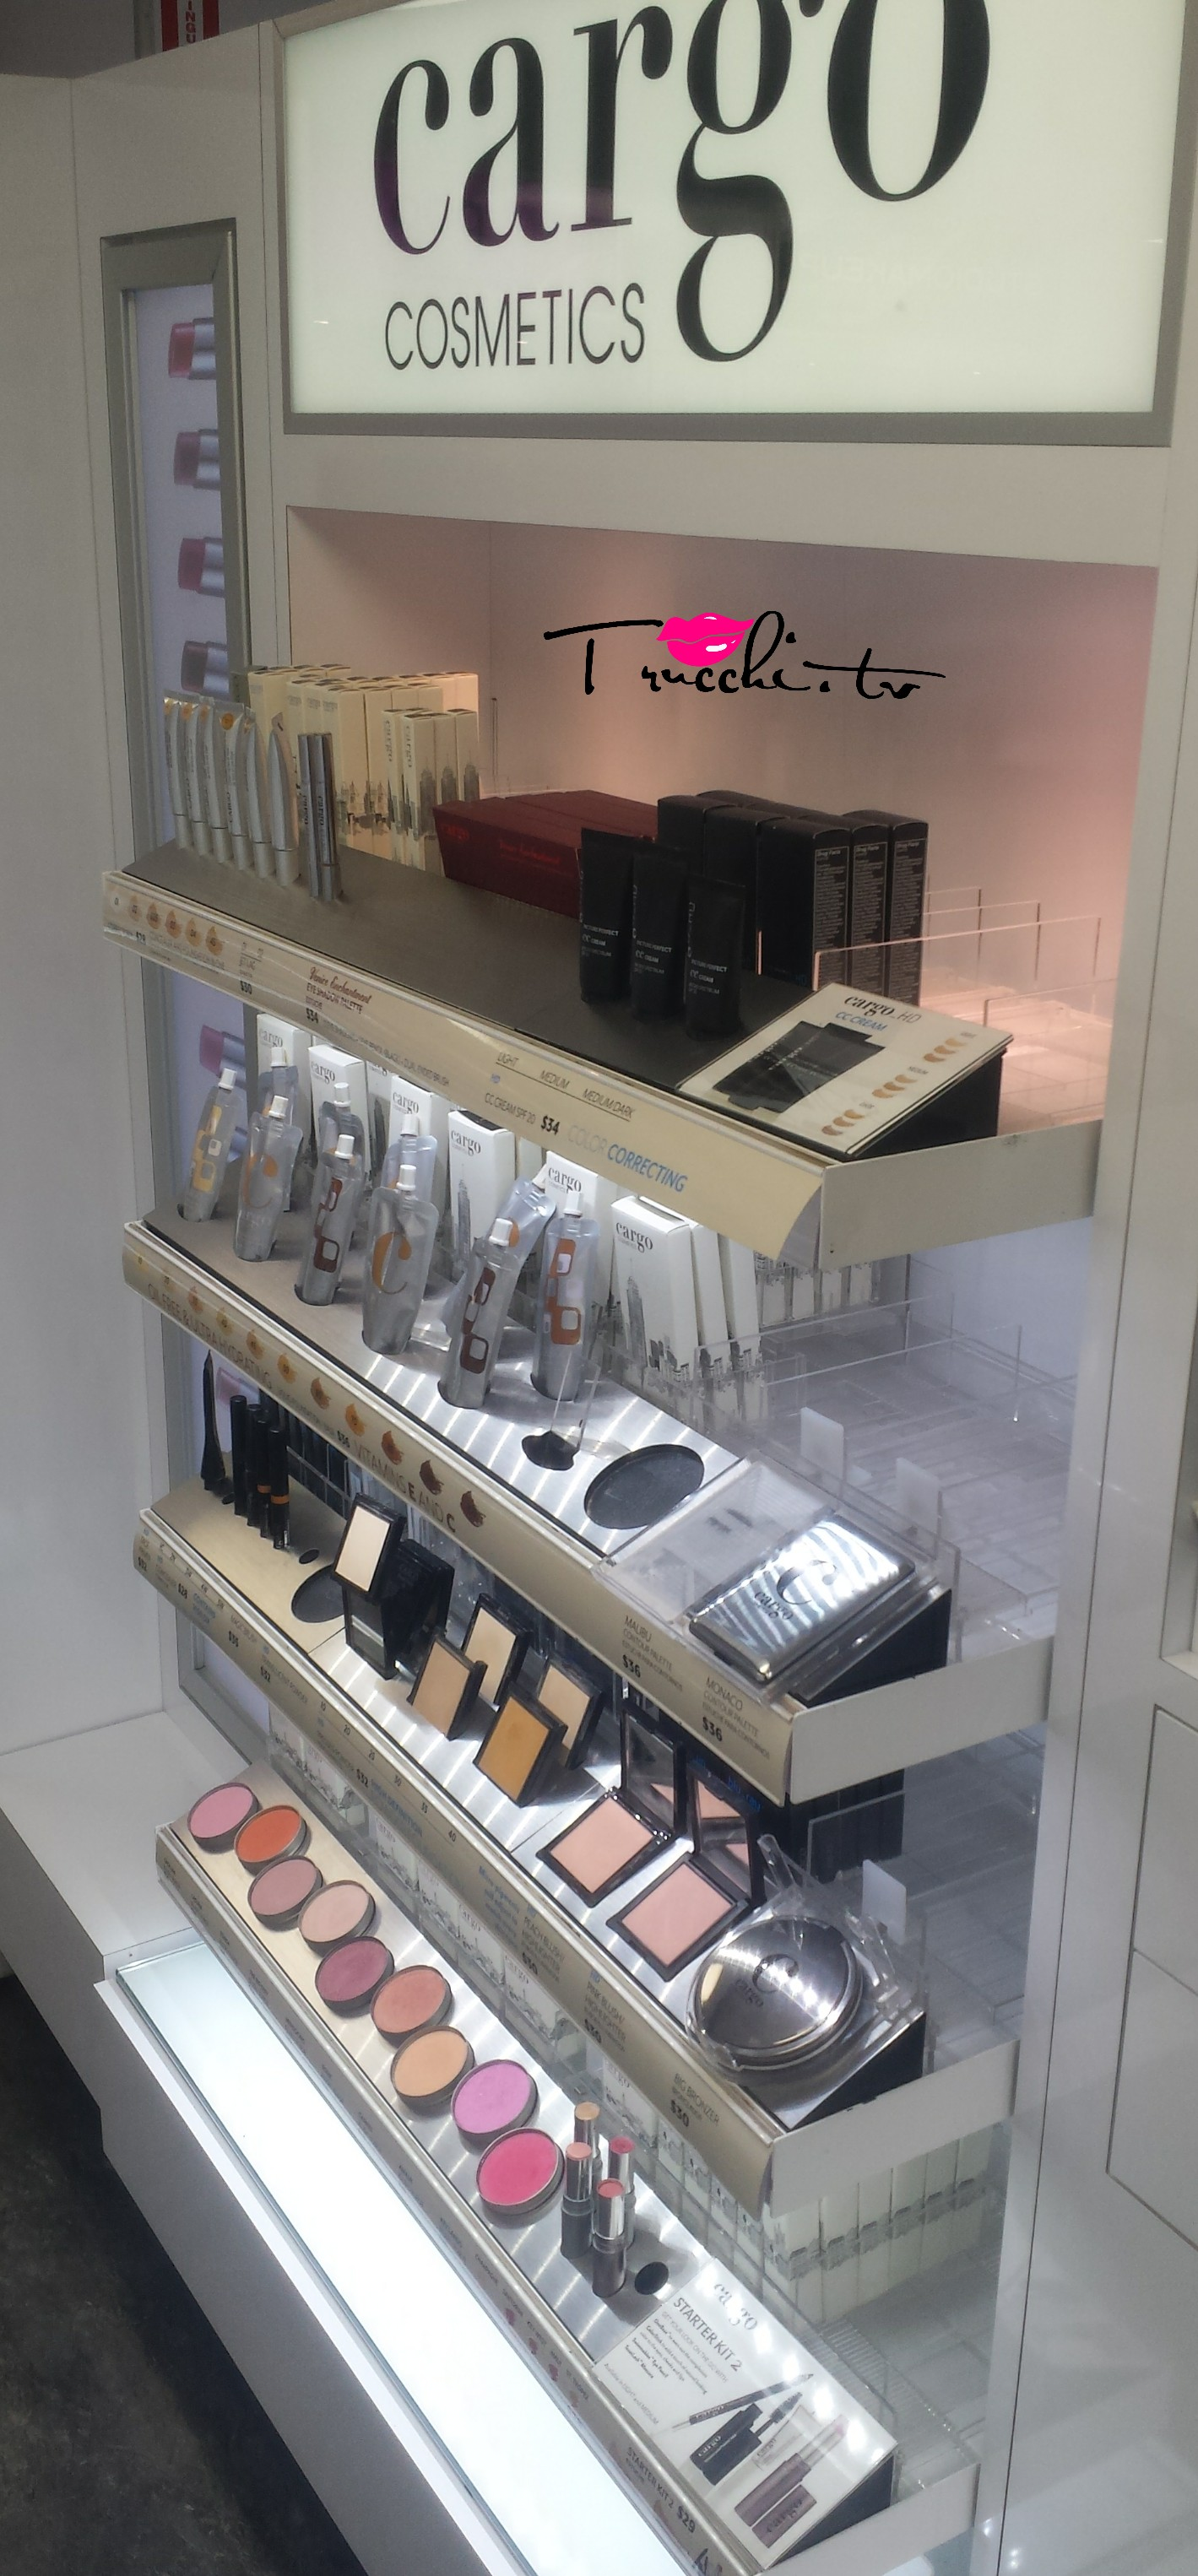 Guida Shopping Makeup New York - DUANEreade by Walgreens Cargo Cosmetics